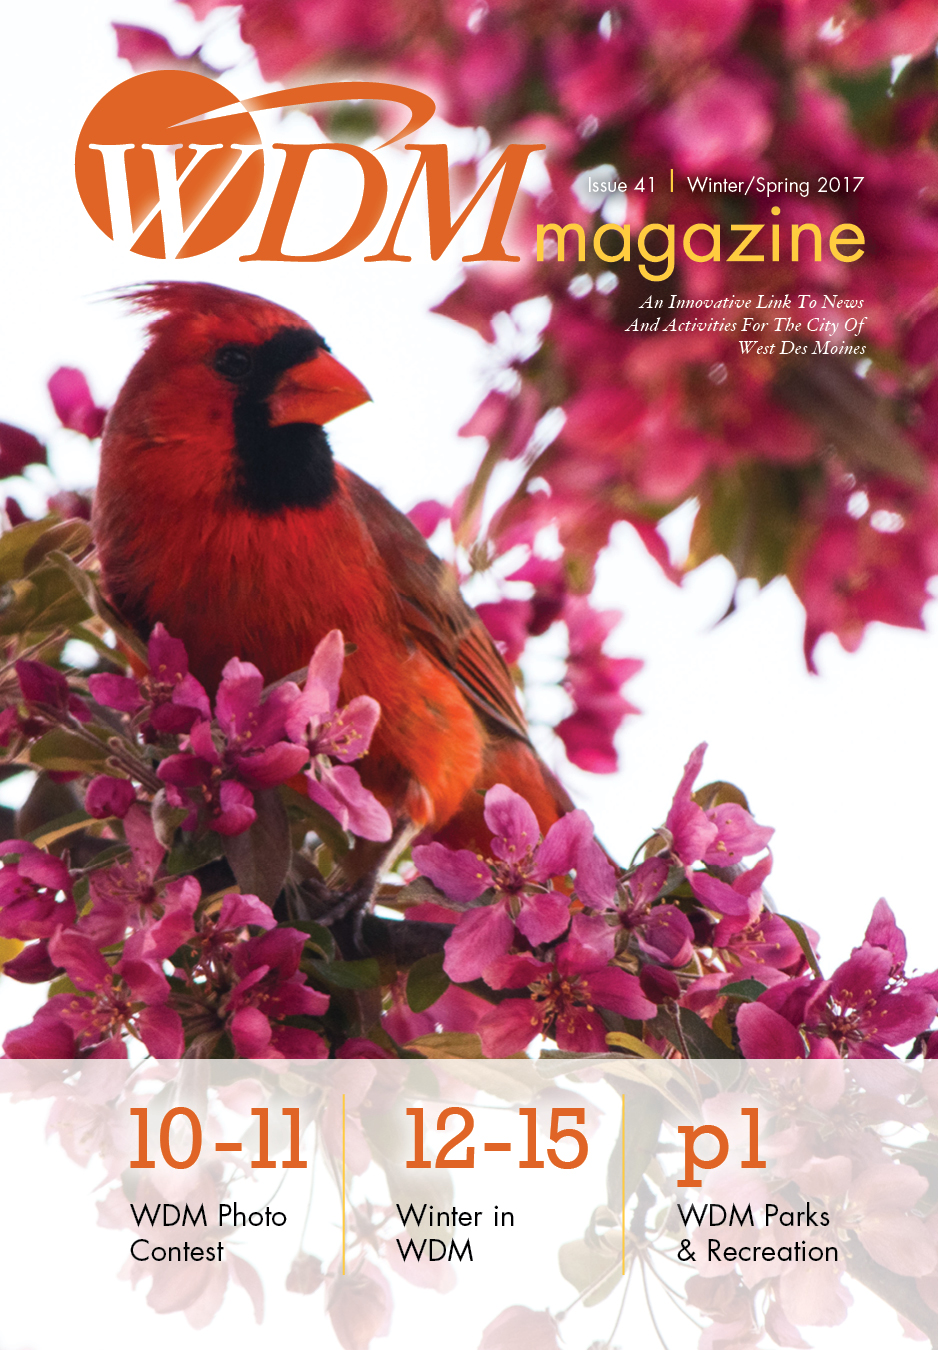 WDMmagcover_41, Winter/Spring 2016